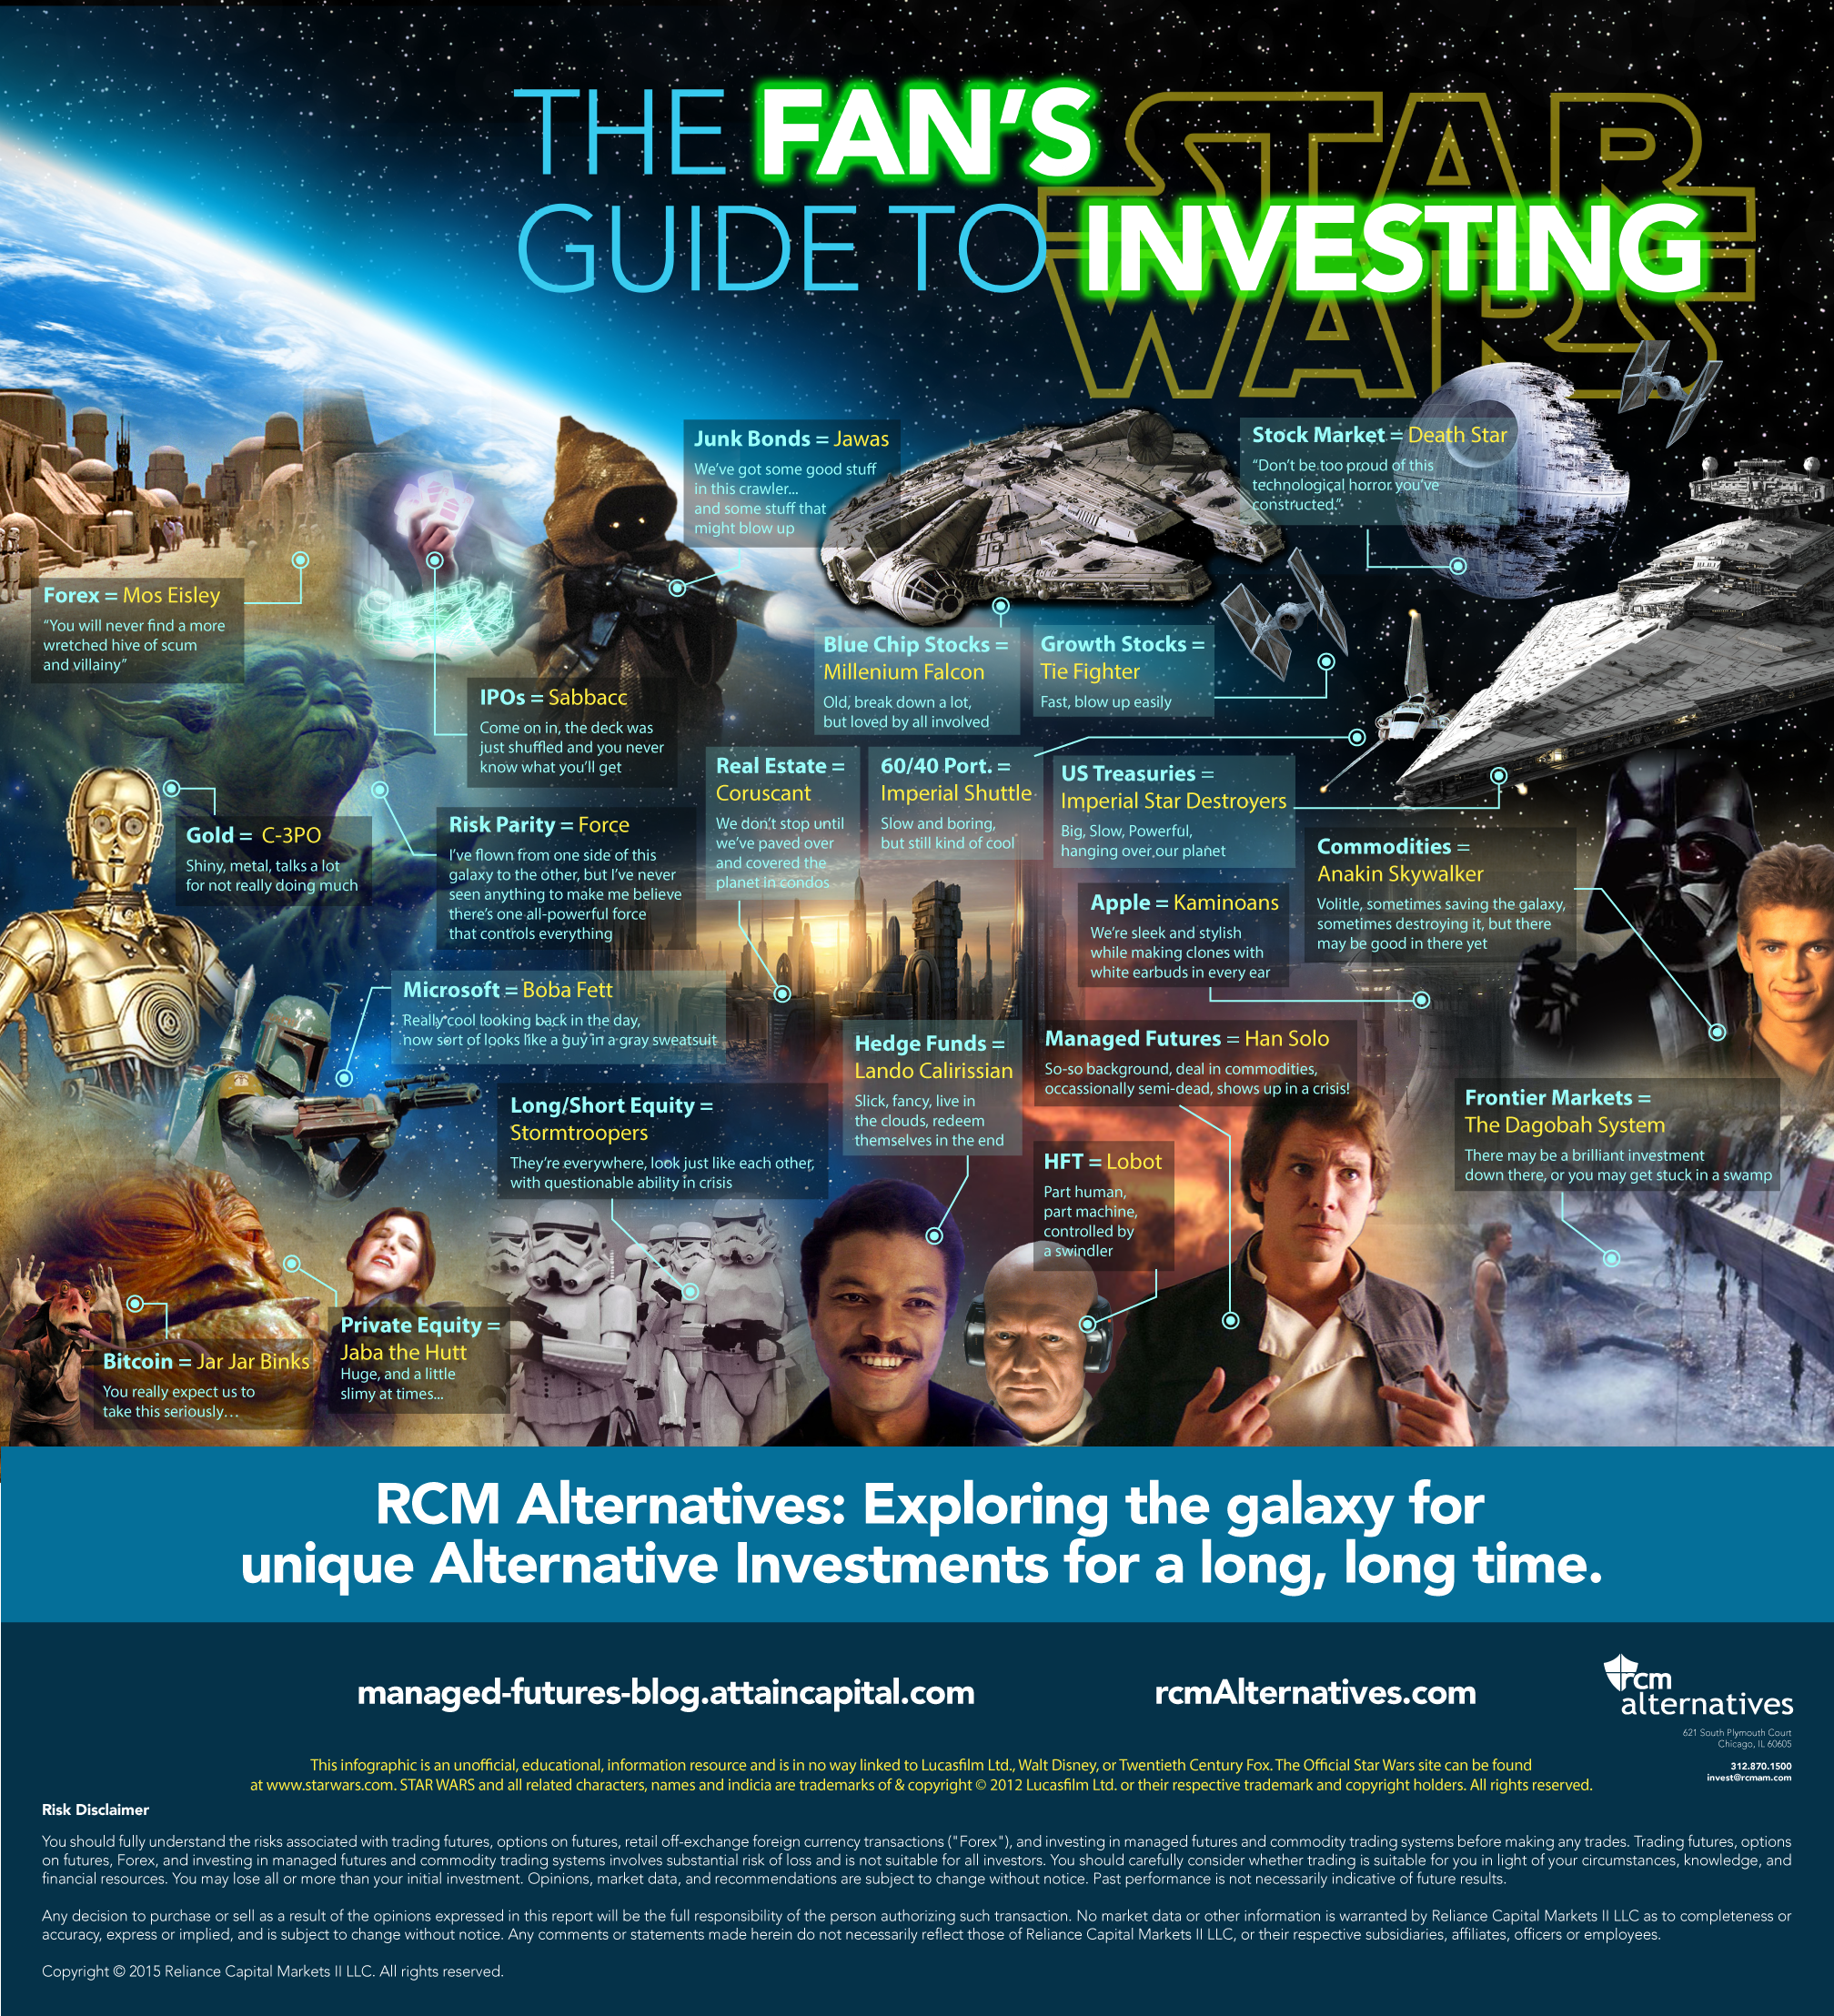 Star Wars Fans Guide to becoming A Jedi Knight in Investing